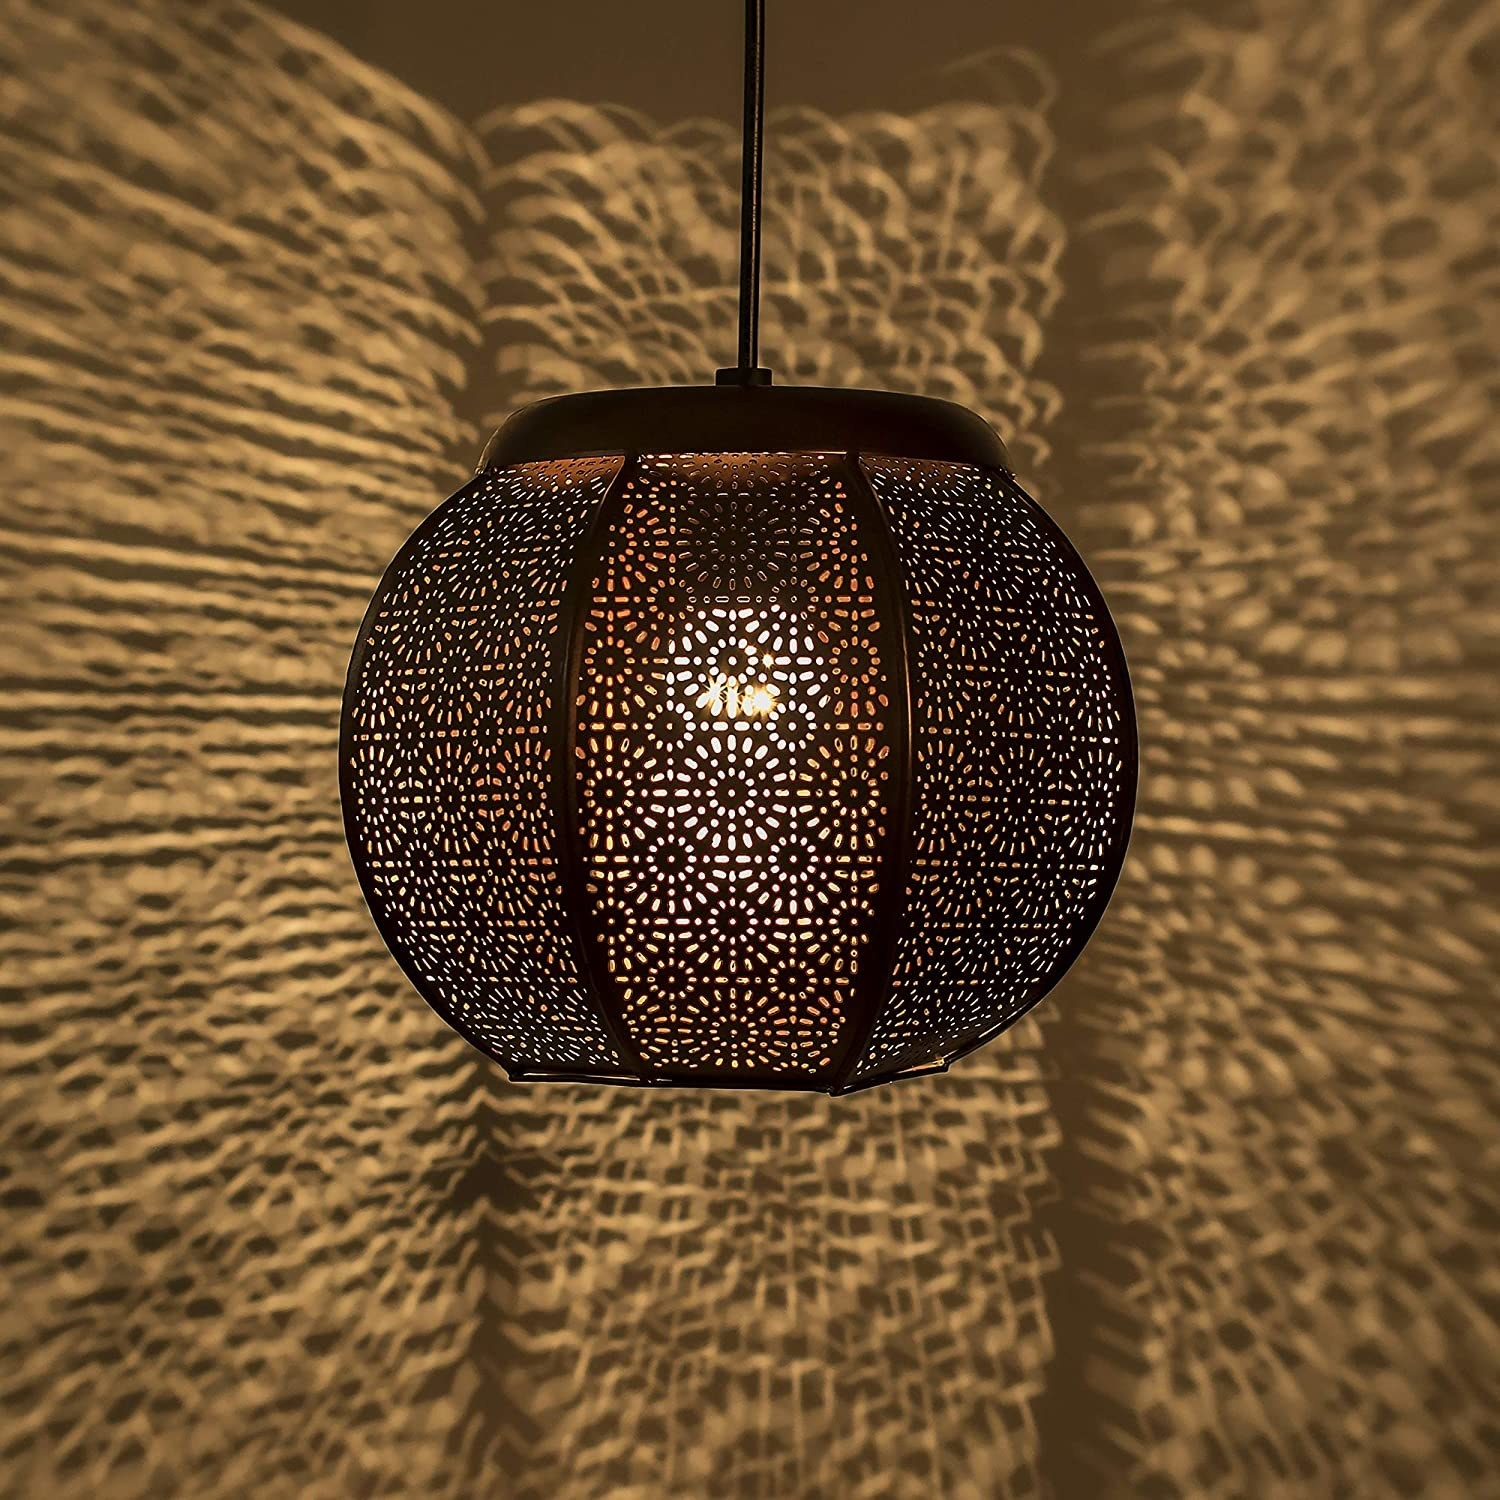 A Moroccan lamp with patterns being cast on walls